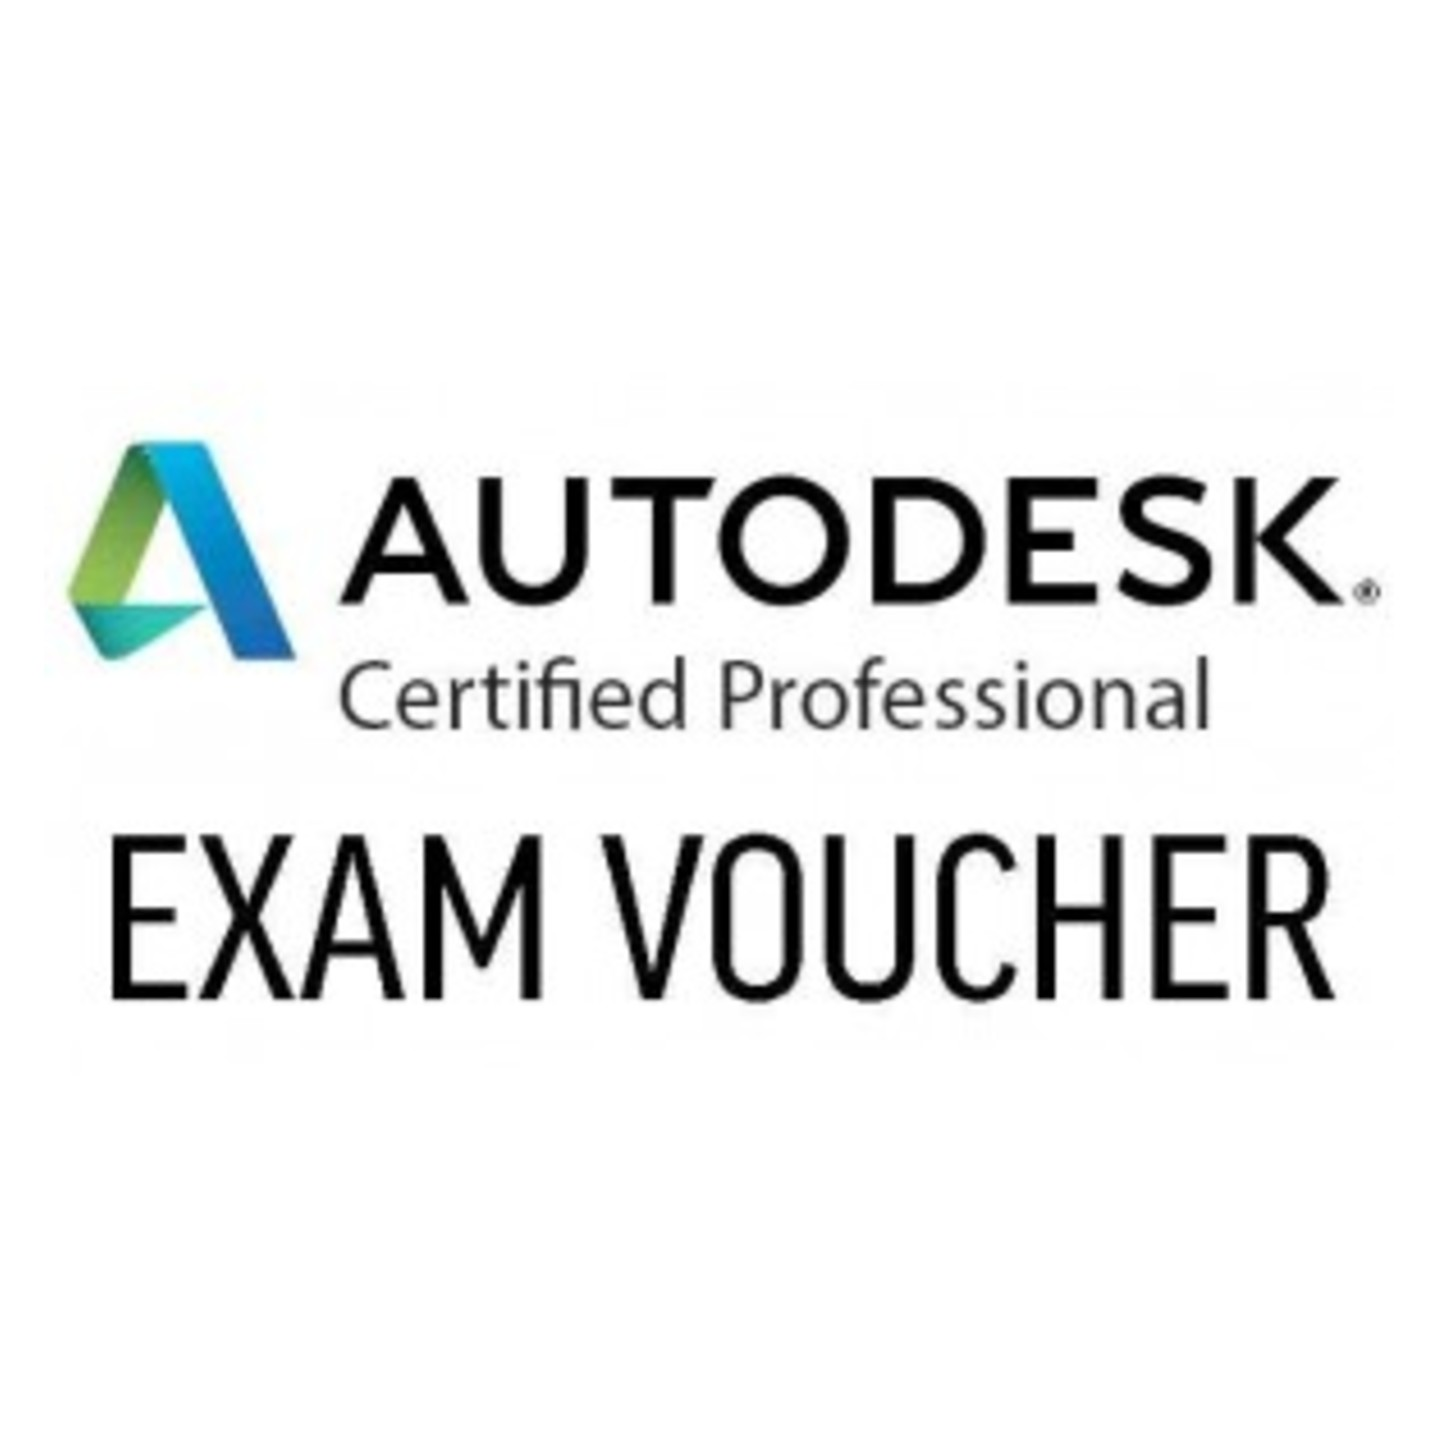 Autodesk Certified Professional Exam Voucher